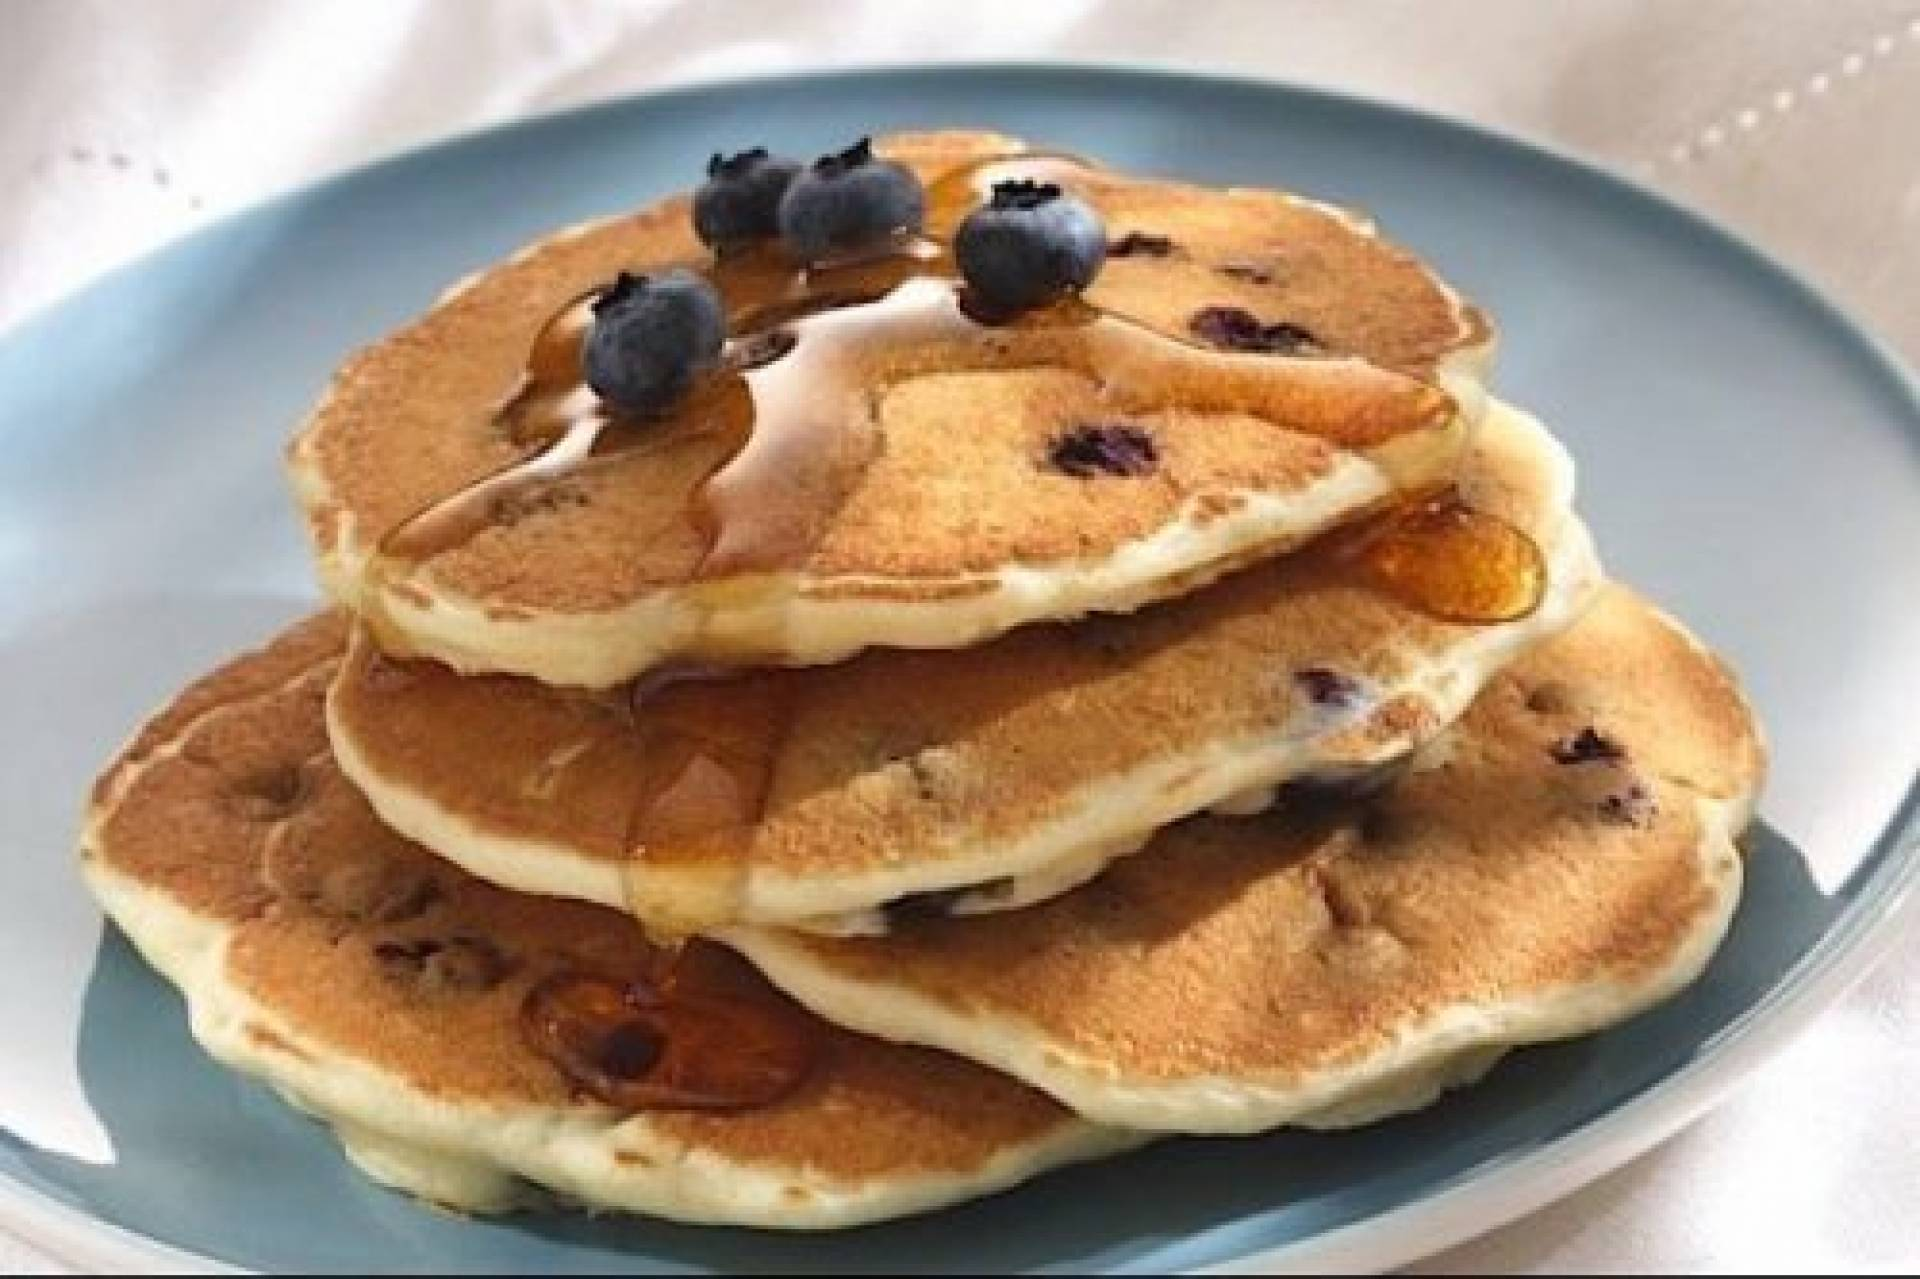 Peanut Butter and Chocolate Protein Pancakes*